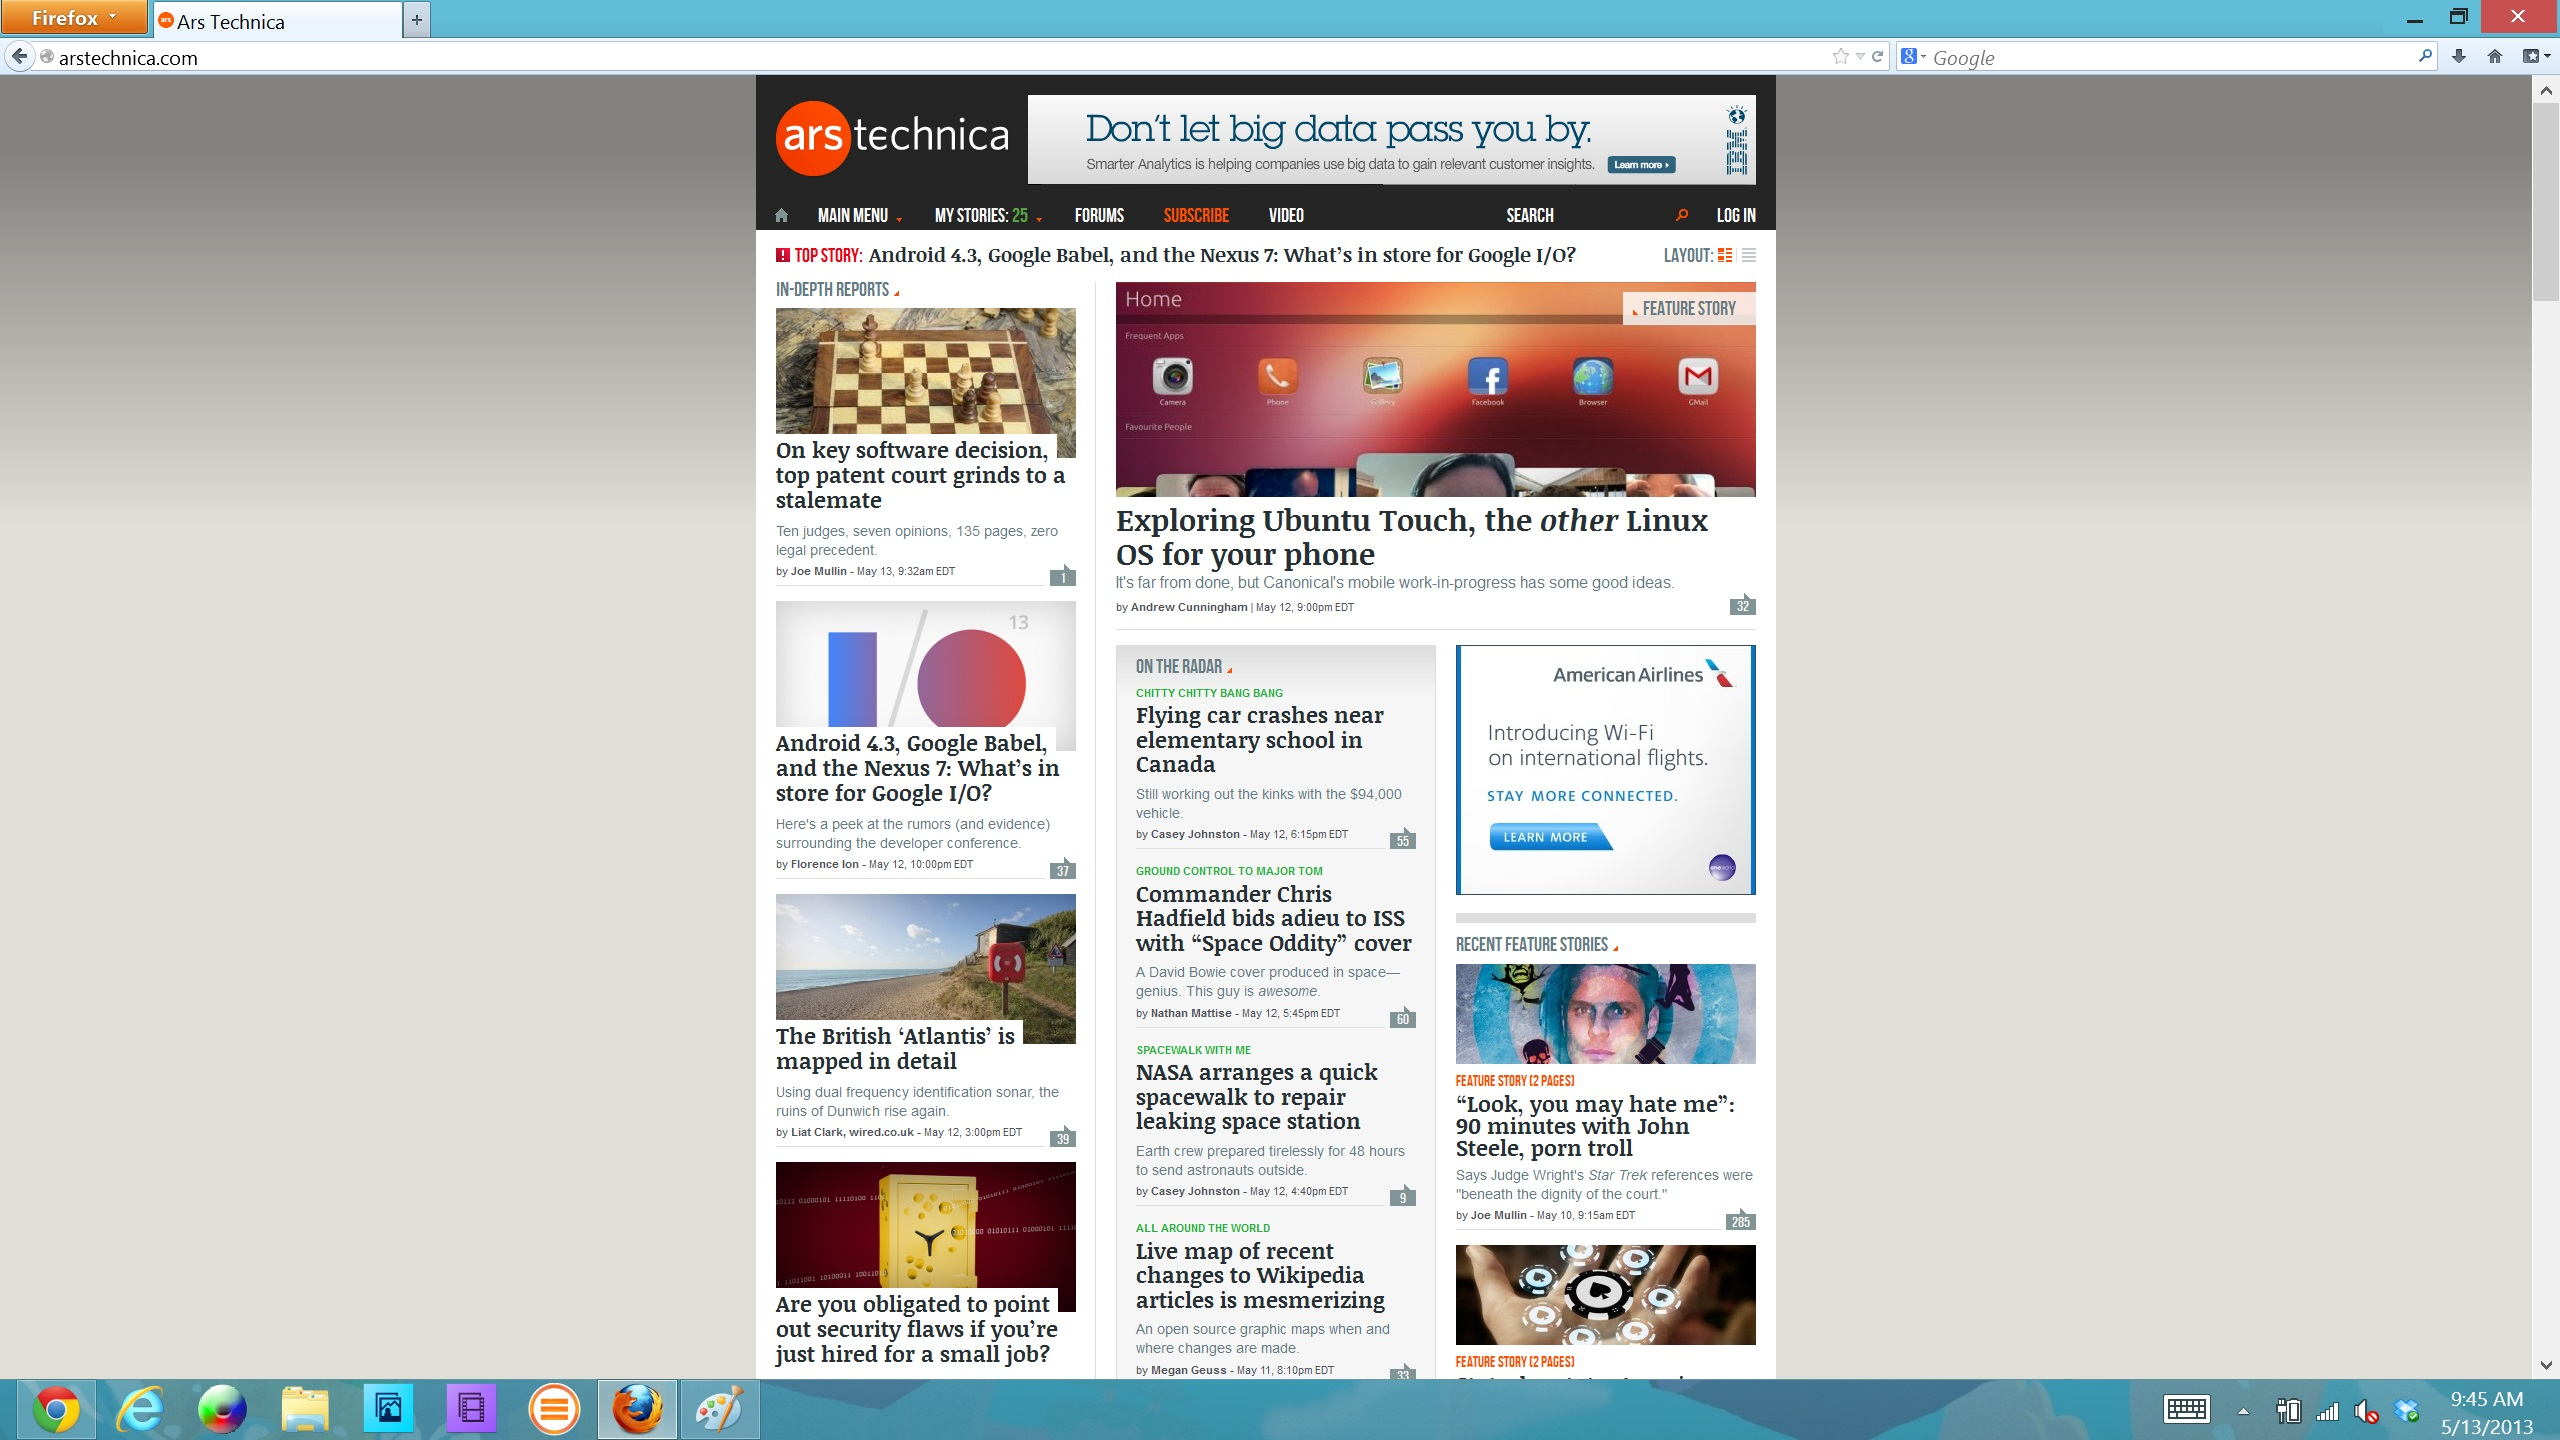 Mozilla Firefox's UI renders nicely, but the page content doesn't scale along with it.